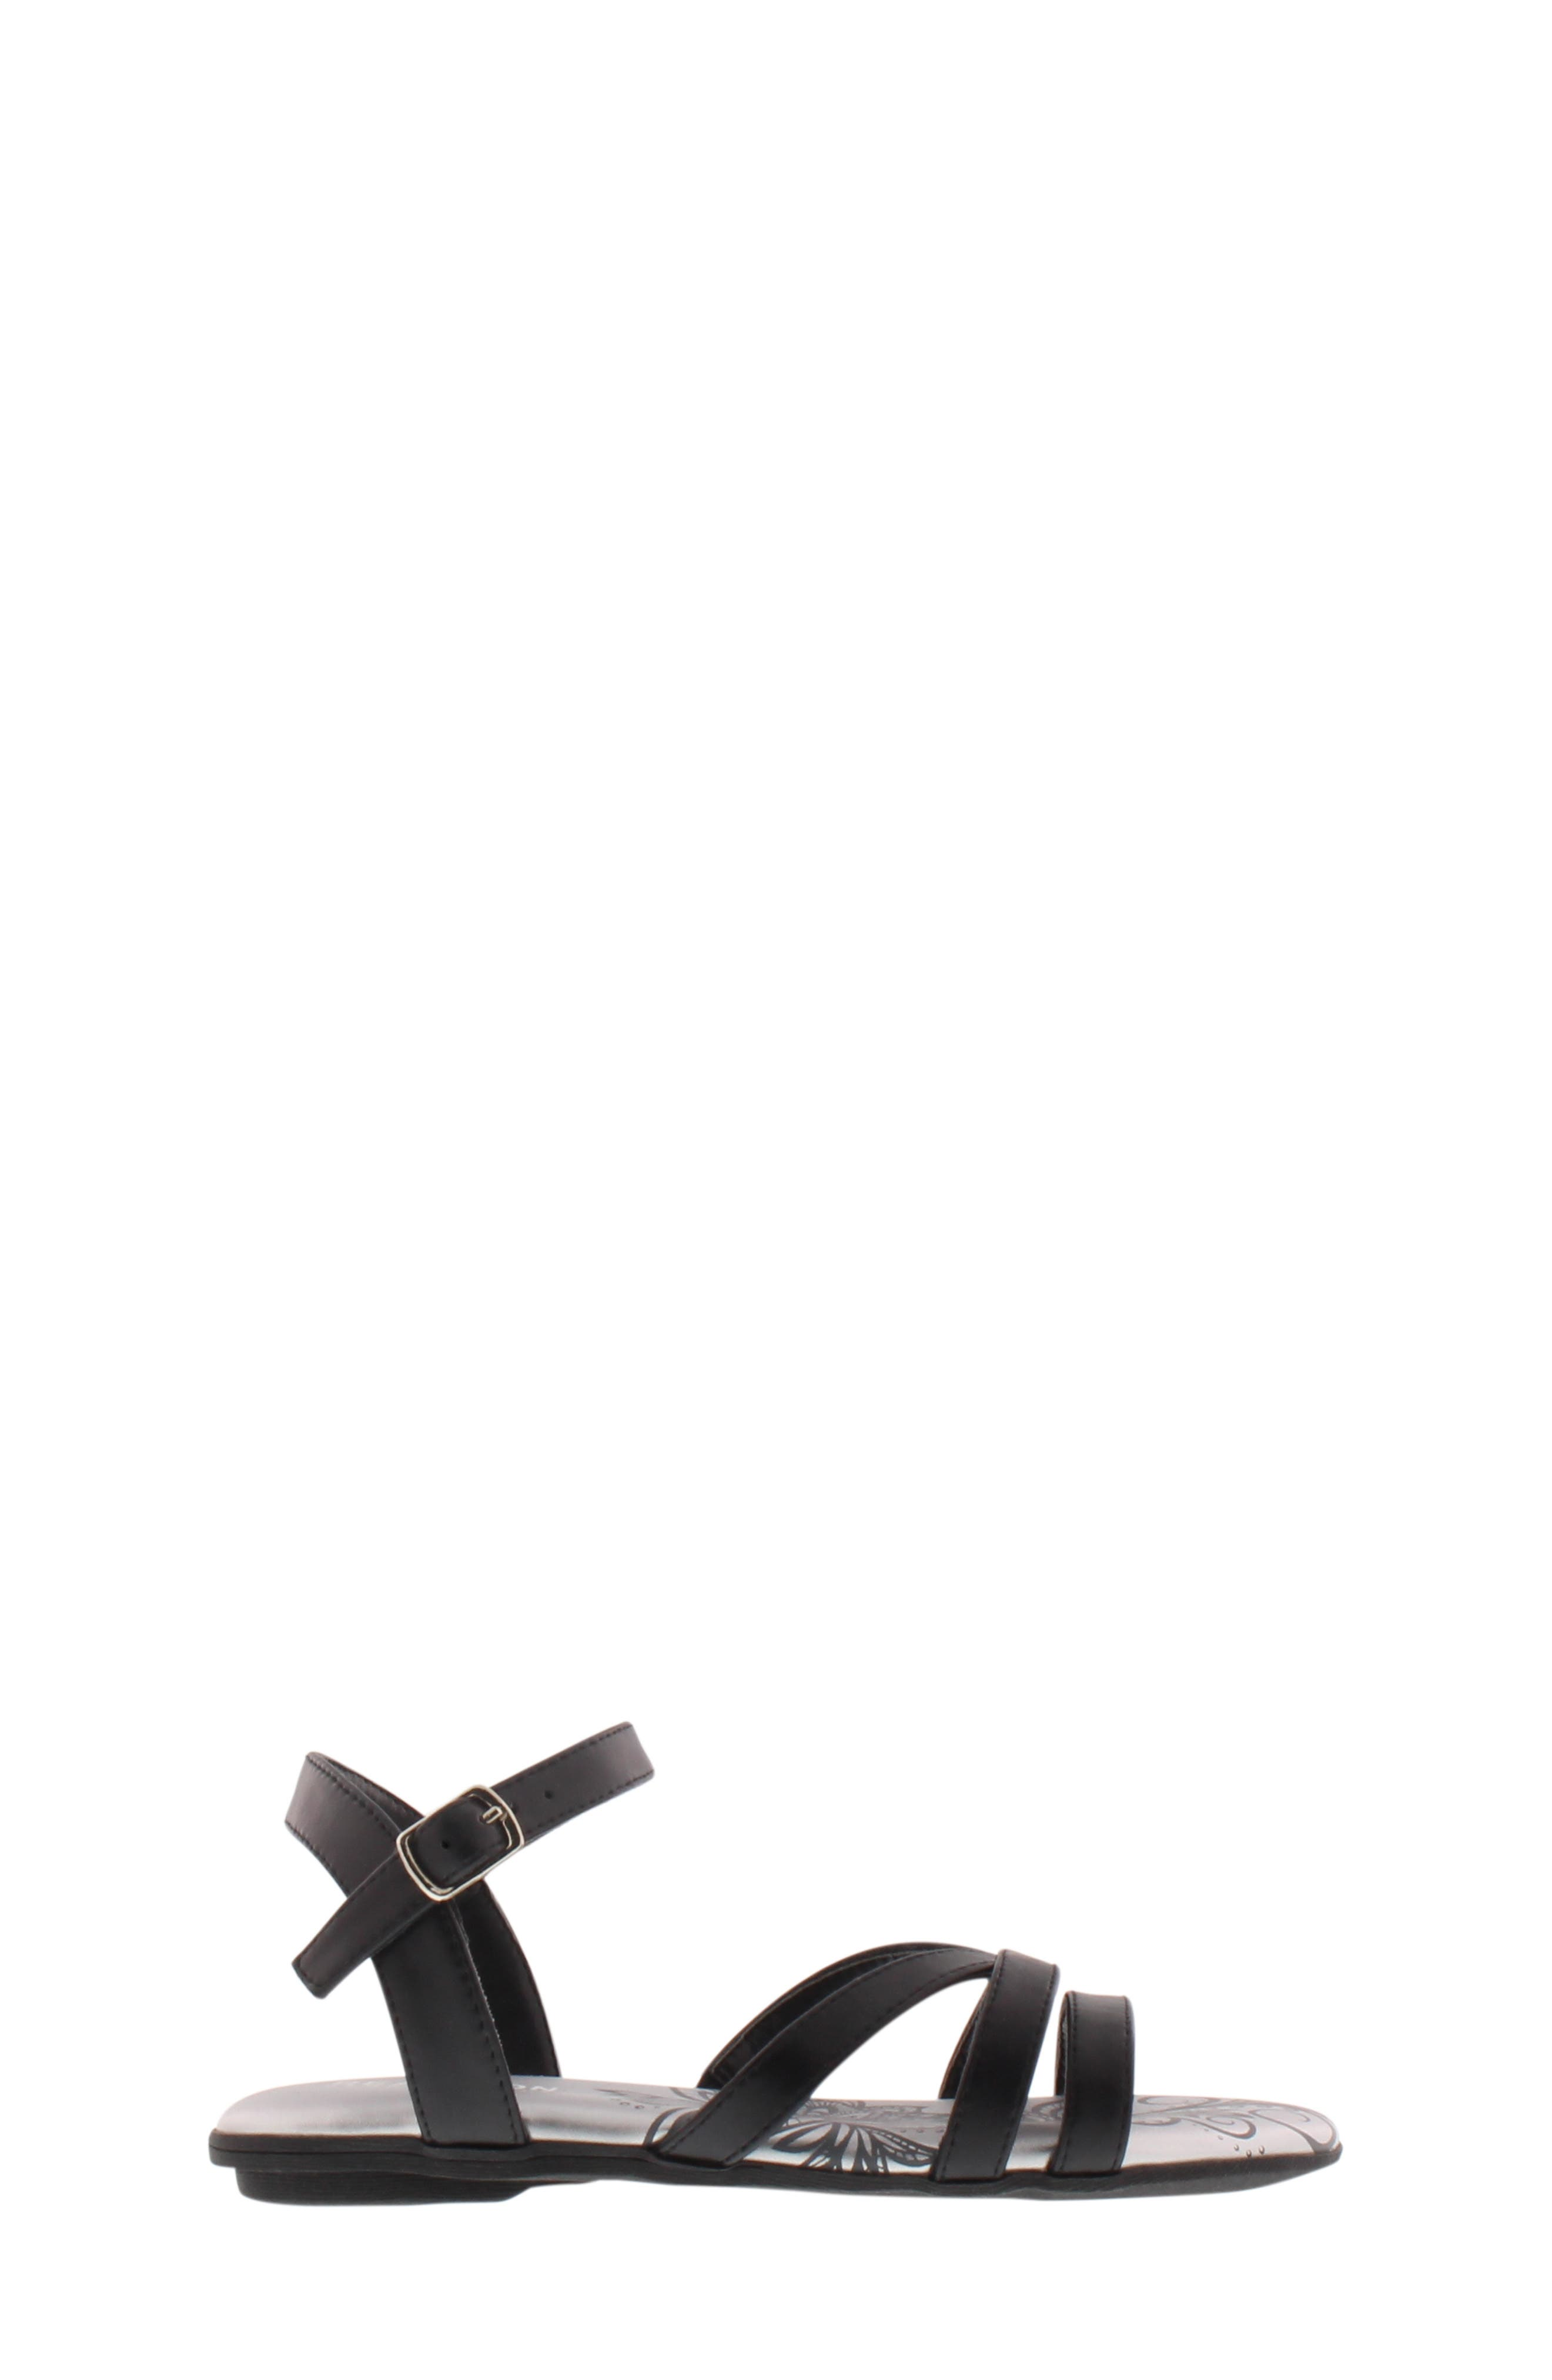 REACTION KENNETH COLE,                             Bright Lilly Strappy Sandal,                             Alternate thumbnail 8, color,                             BLACK